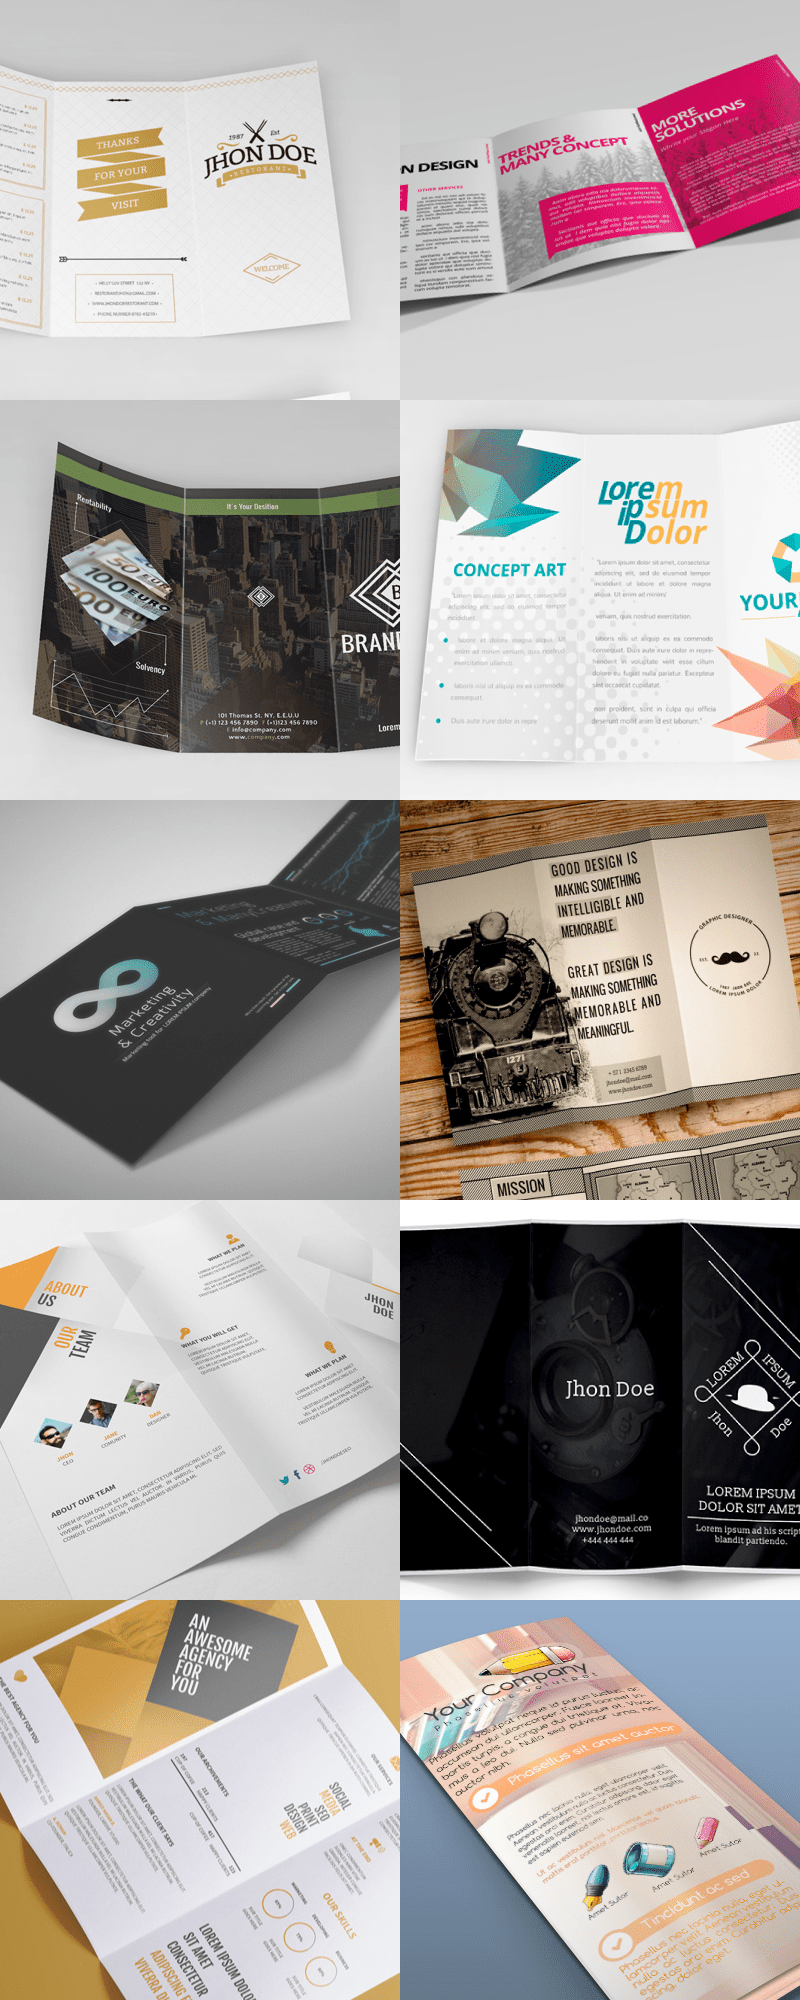 25 Editable Illustrator Tri fold Brochure Templates   Bypeople     to create tri folds  It has editable shapes  changeable texts  and  different styles created to match current design trends  The elements  included can be